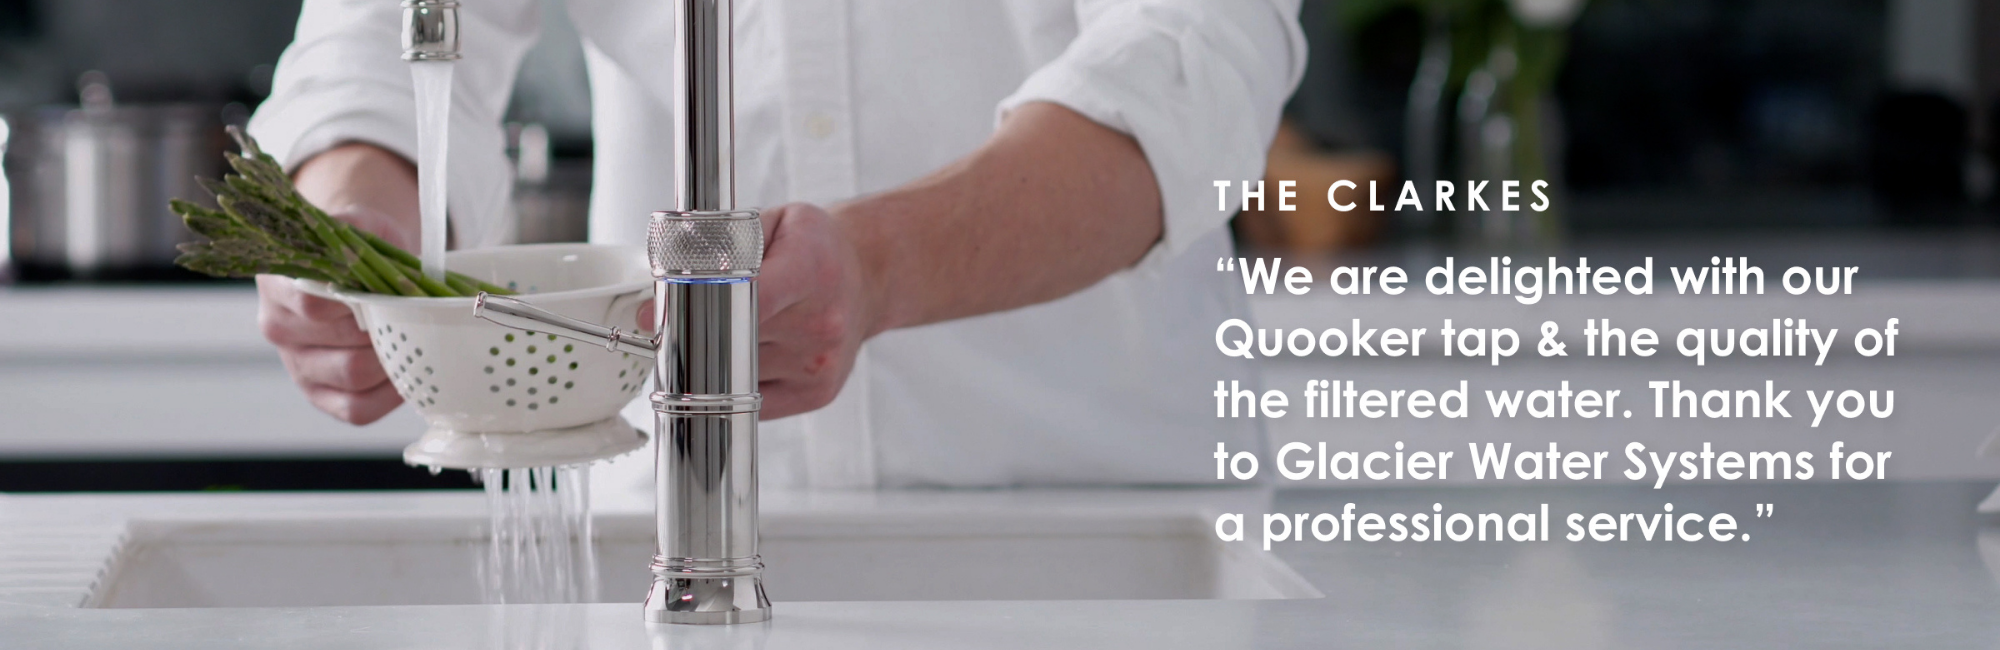 https://glacierwatersystems.com/product-category/quooker-instant-boiling-water-taps/